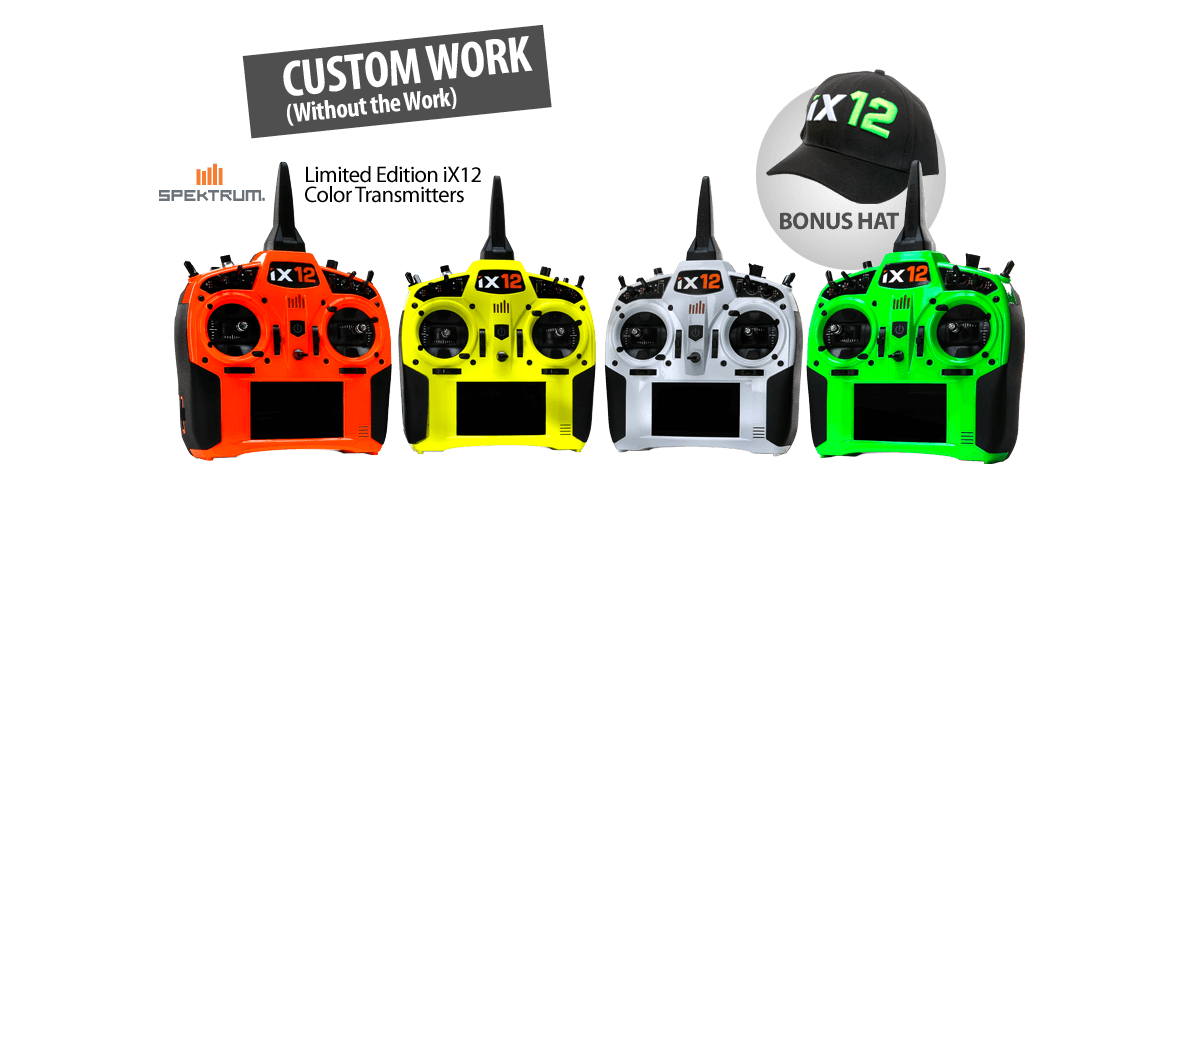 Limited Edition iX12 Color Transmitters